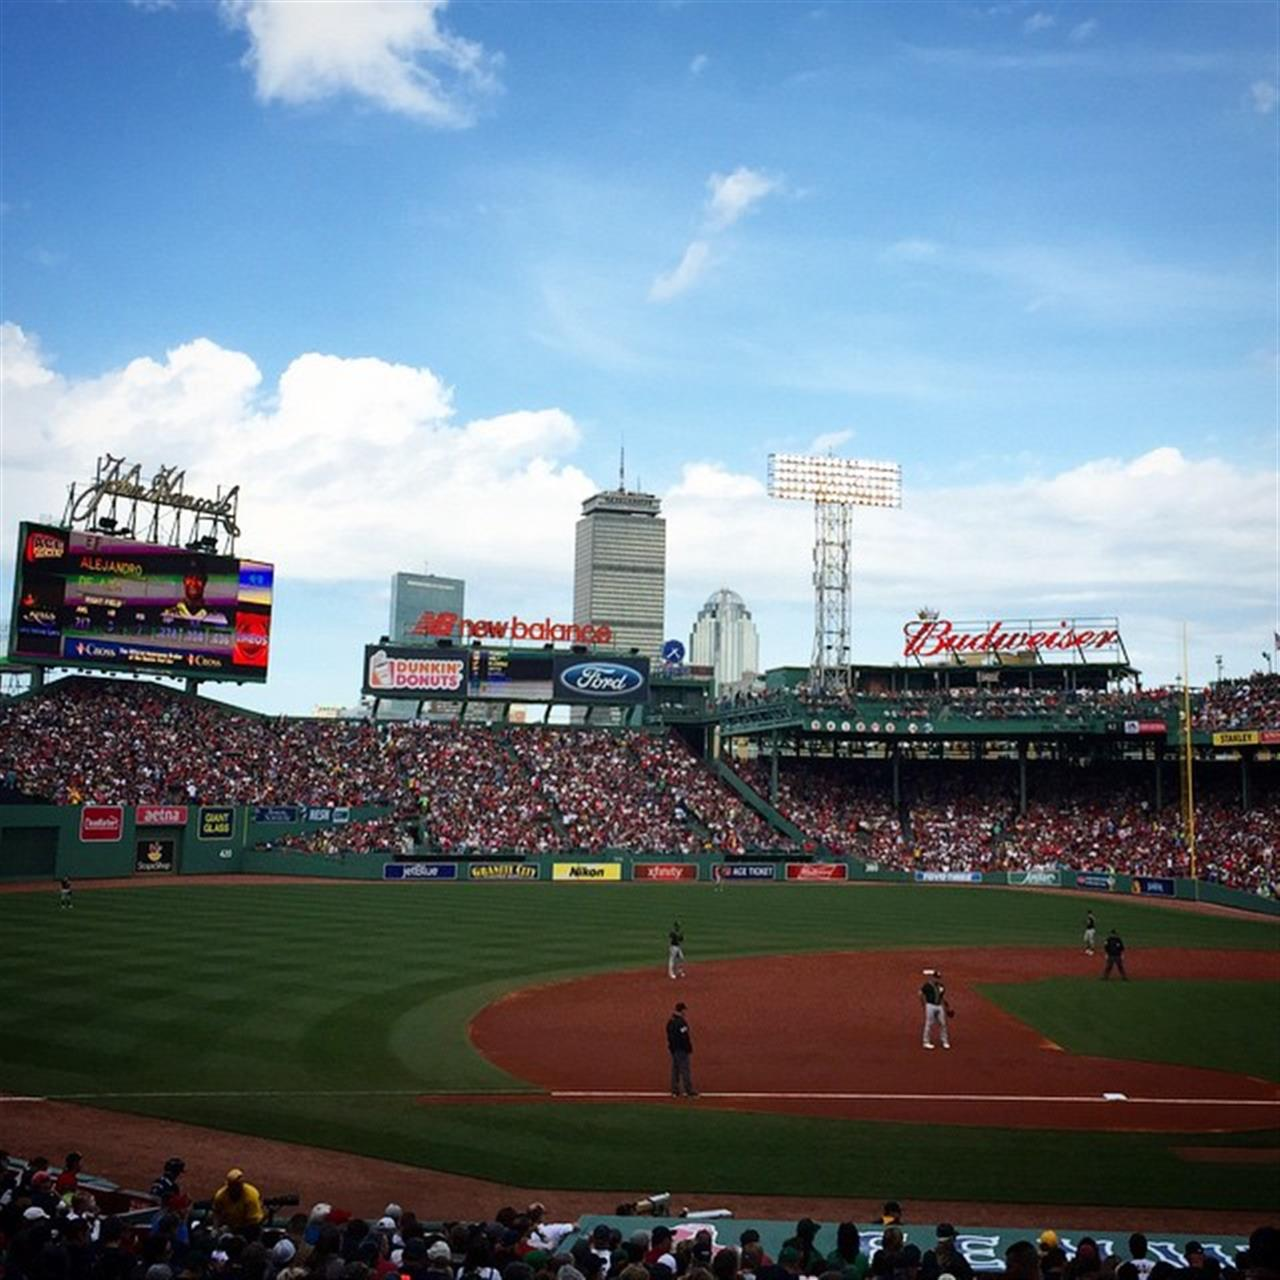 #leadingrelocal #Boston #Massachusetts #fenwaypark #redsox